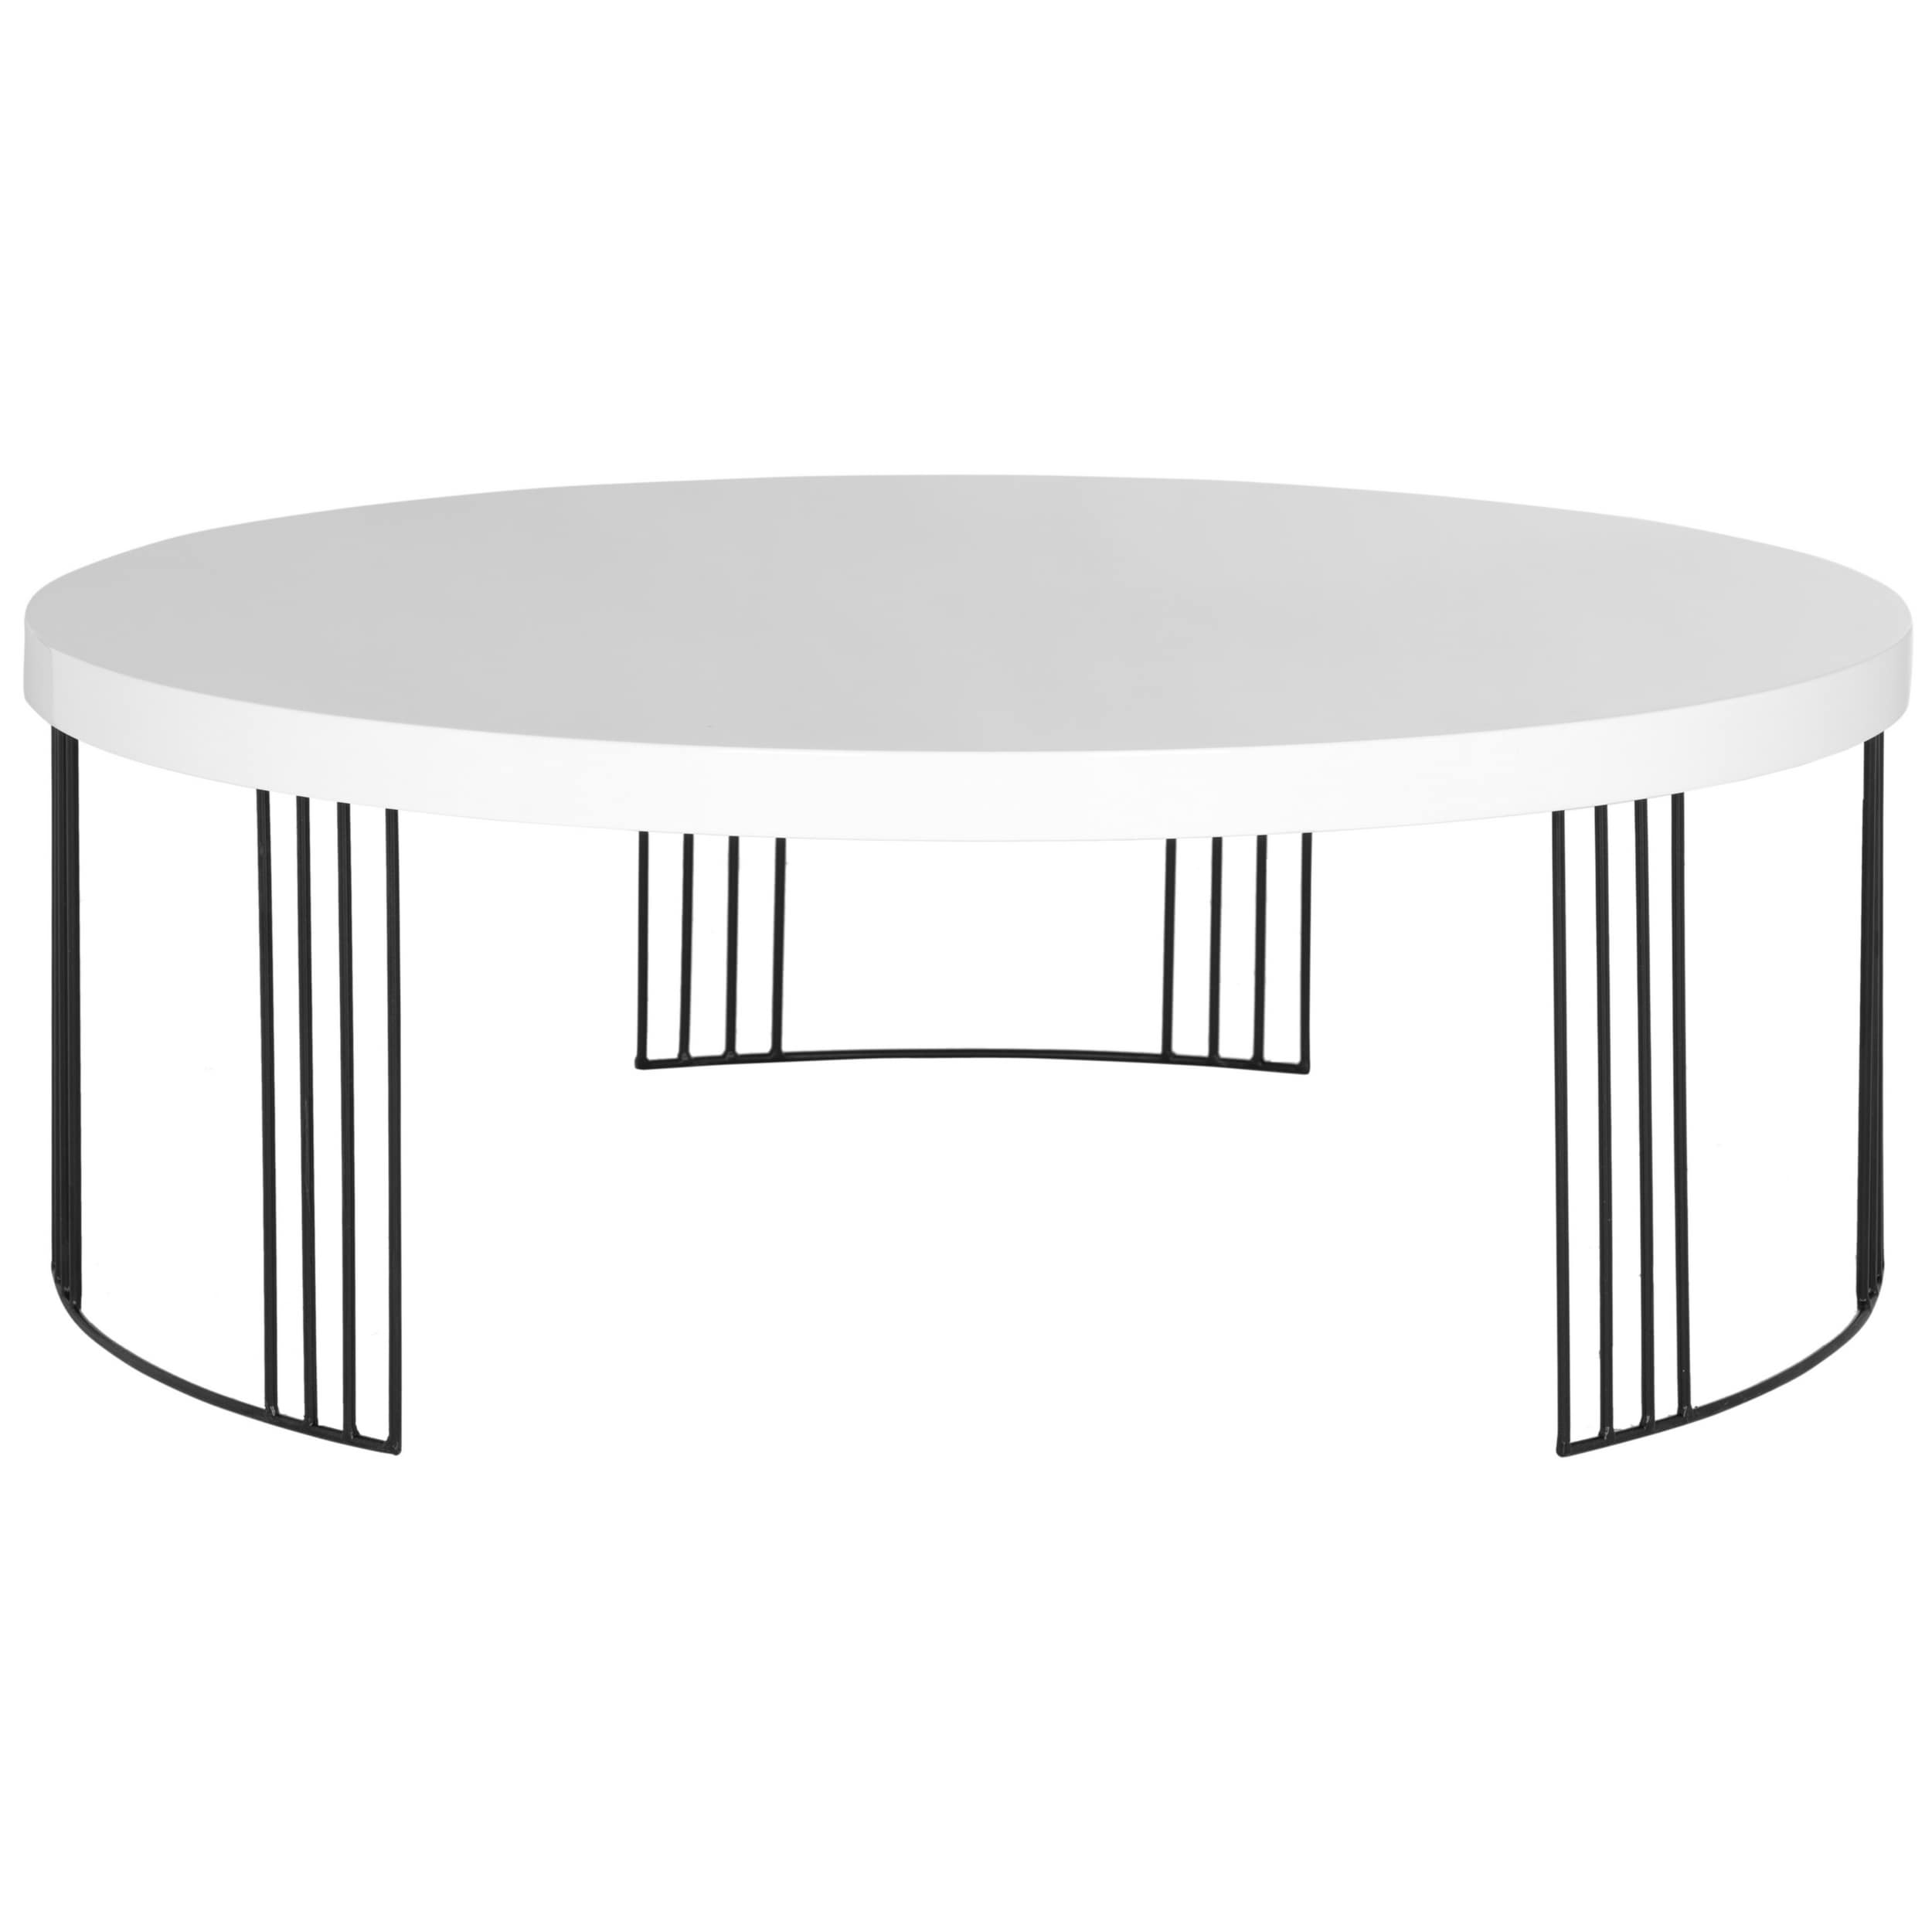 Safavieh Mid Century Modern Keelin White Lacquer Coffee Table